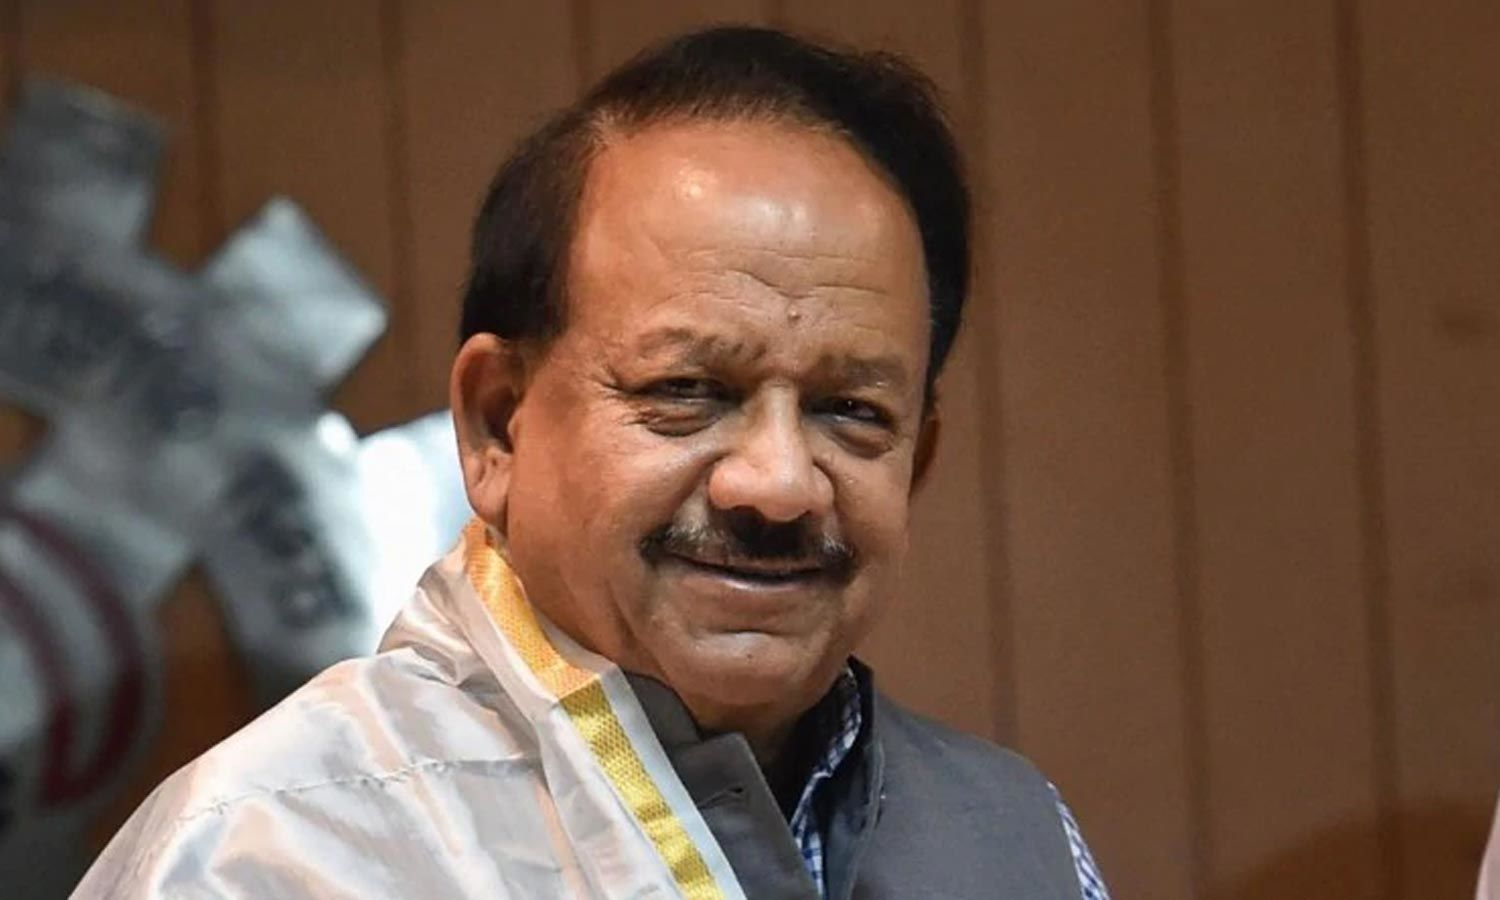 Union Health Minister Dr Harsh Vardhan to become WHO Executive Board chairman: Official